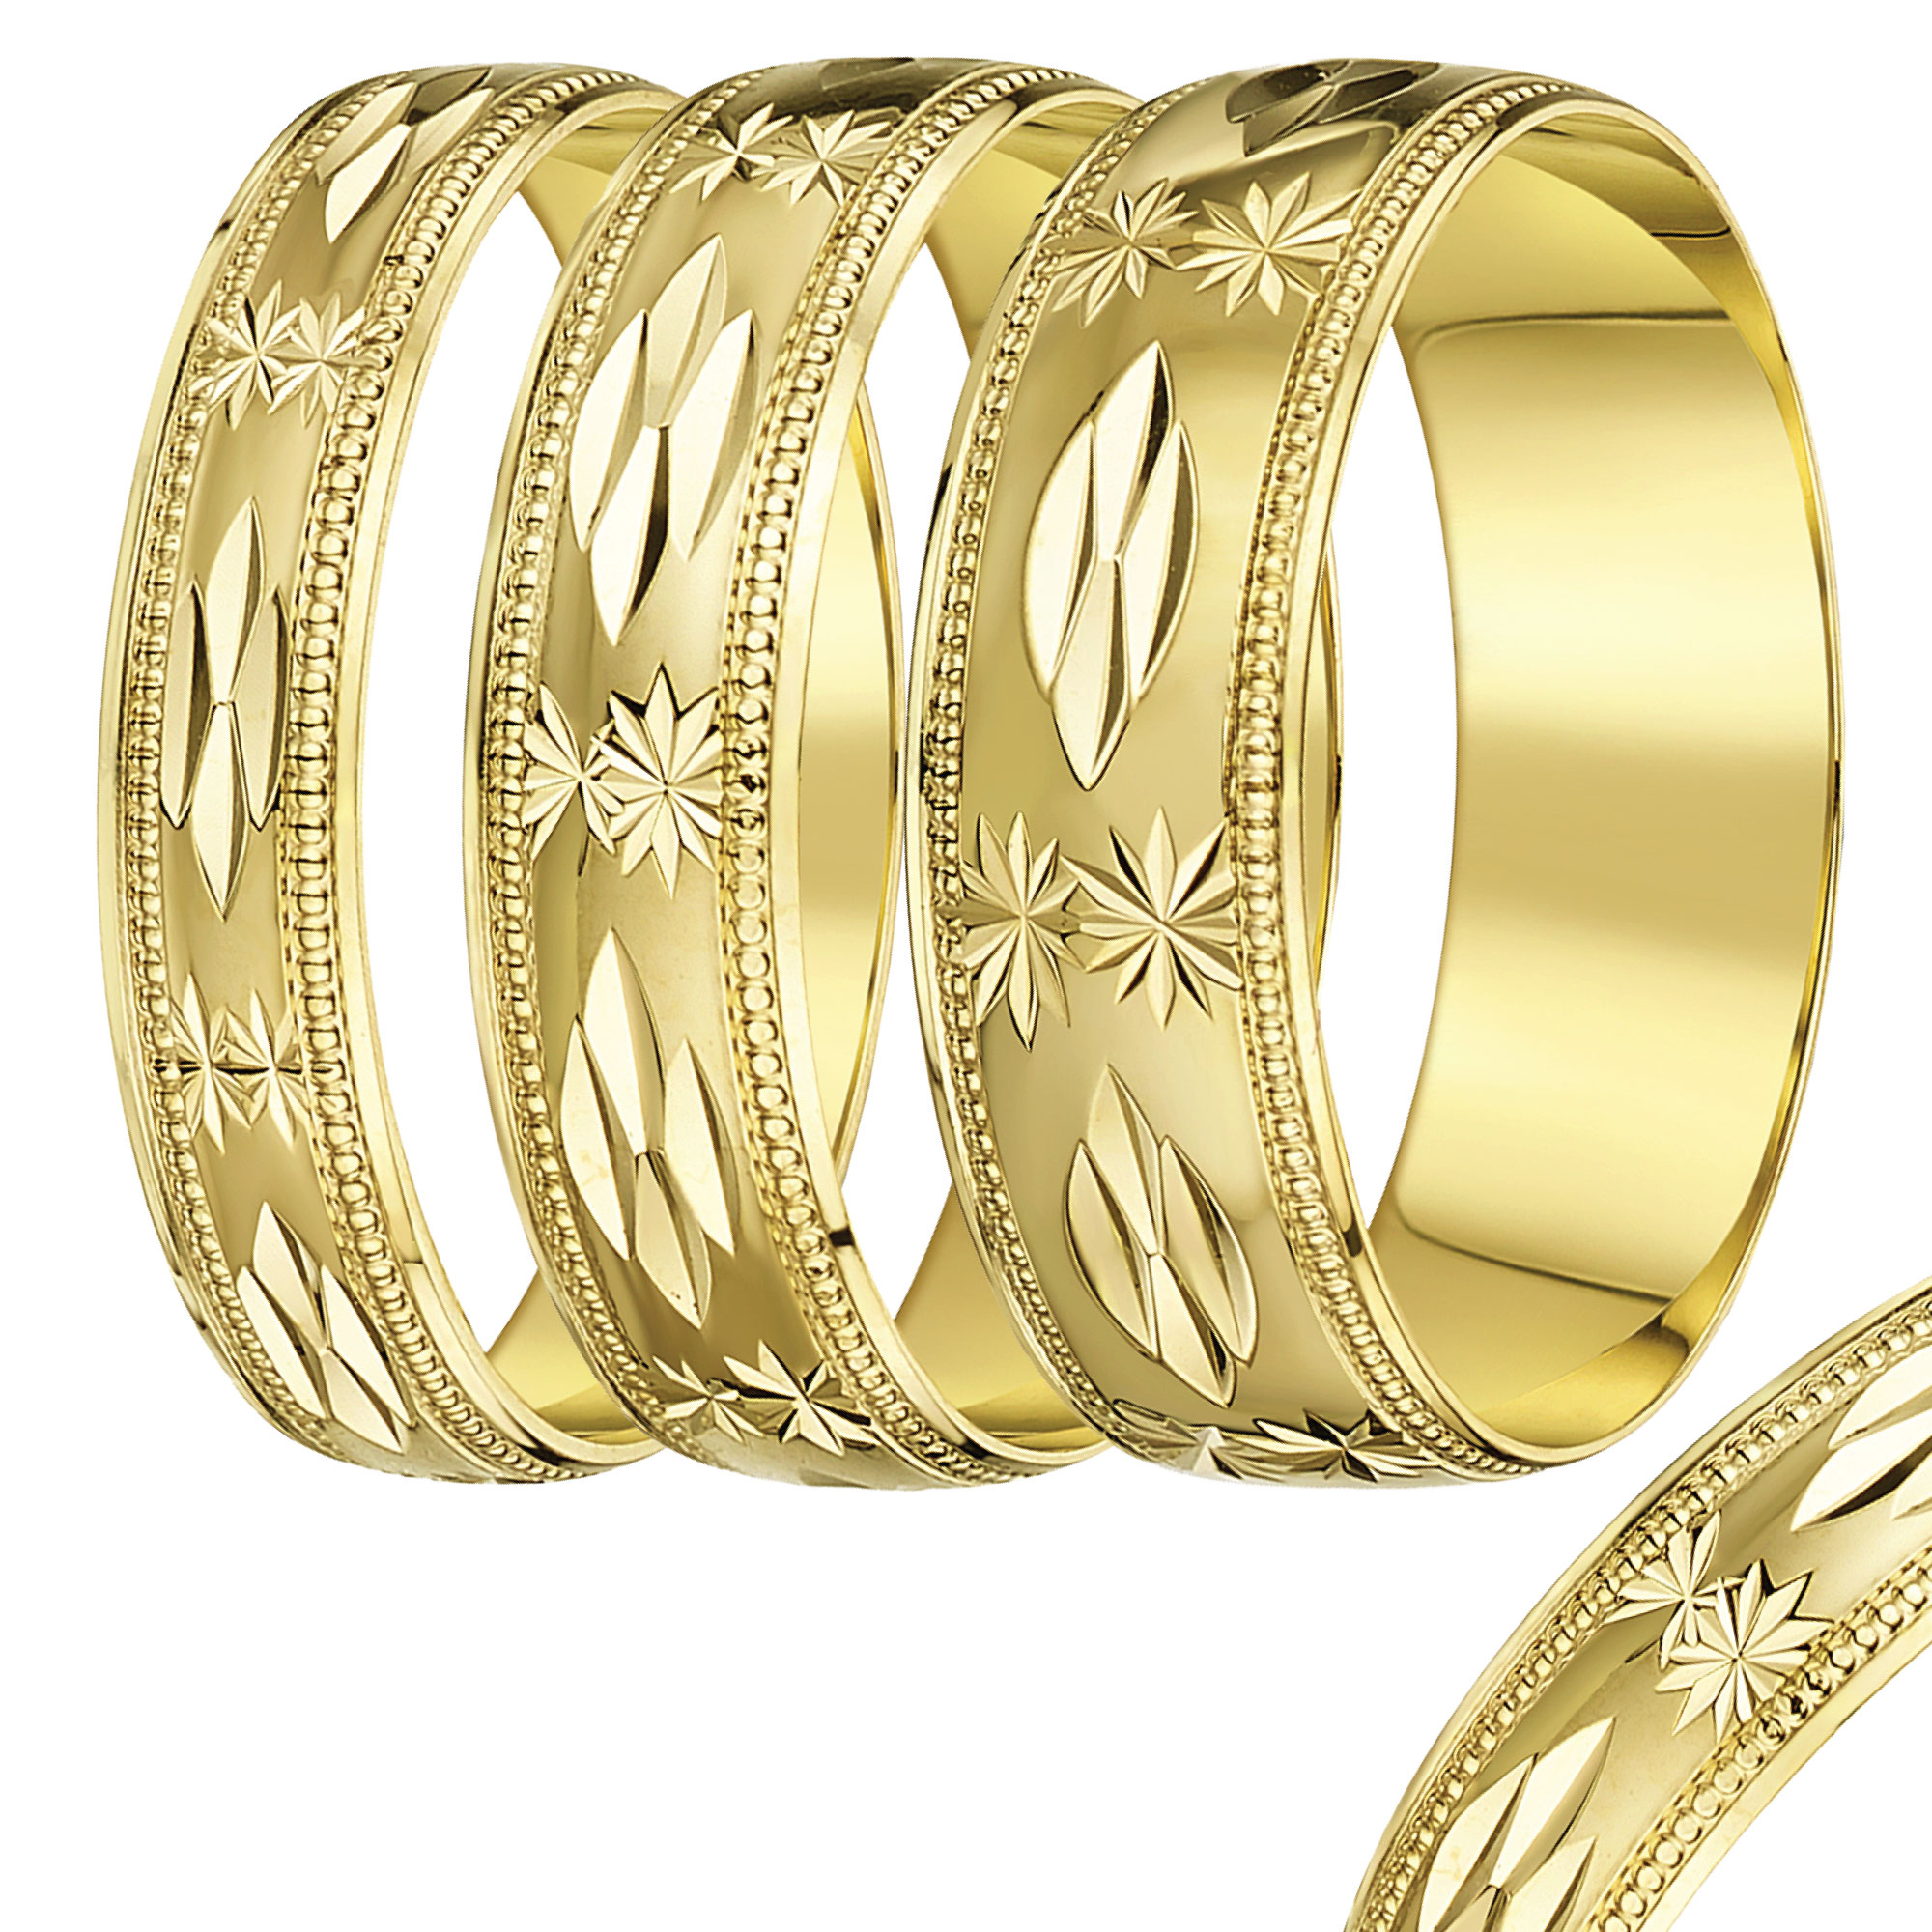 jewellery norwich aurum classic shop b diamond index bands in rings stone products ring patterned ten wedding